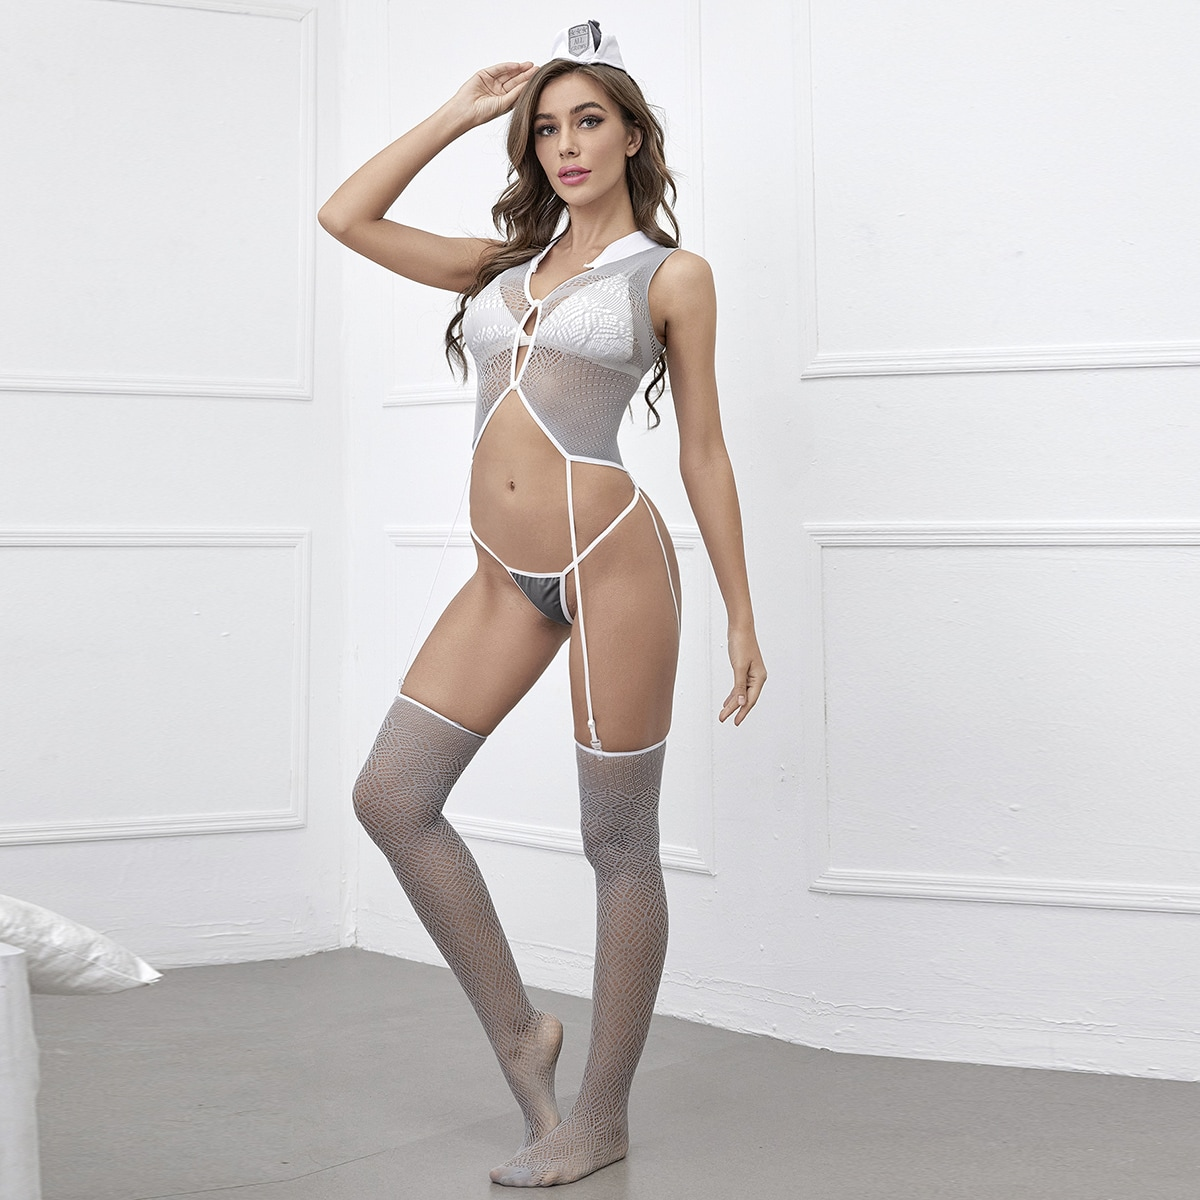 4pack Sheer Mesh Costume Set Without Bra, SHEIN  - buy with discount